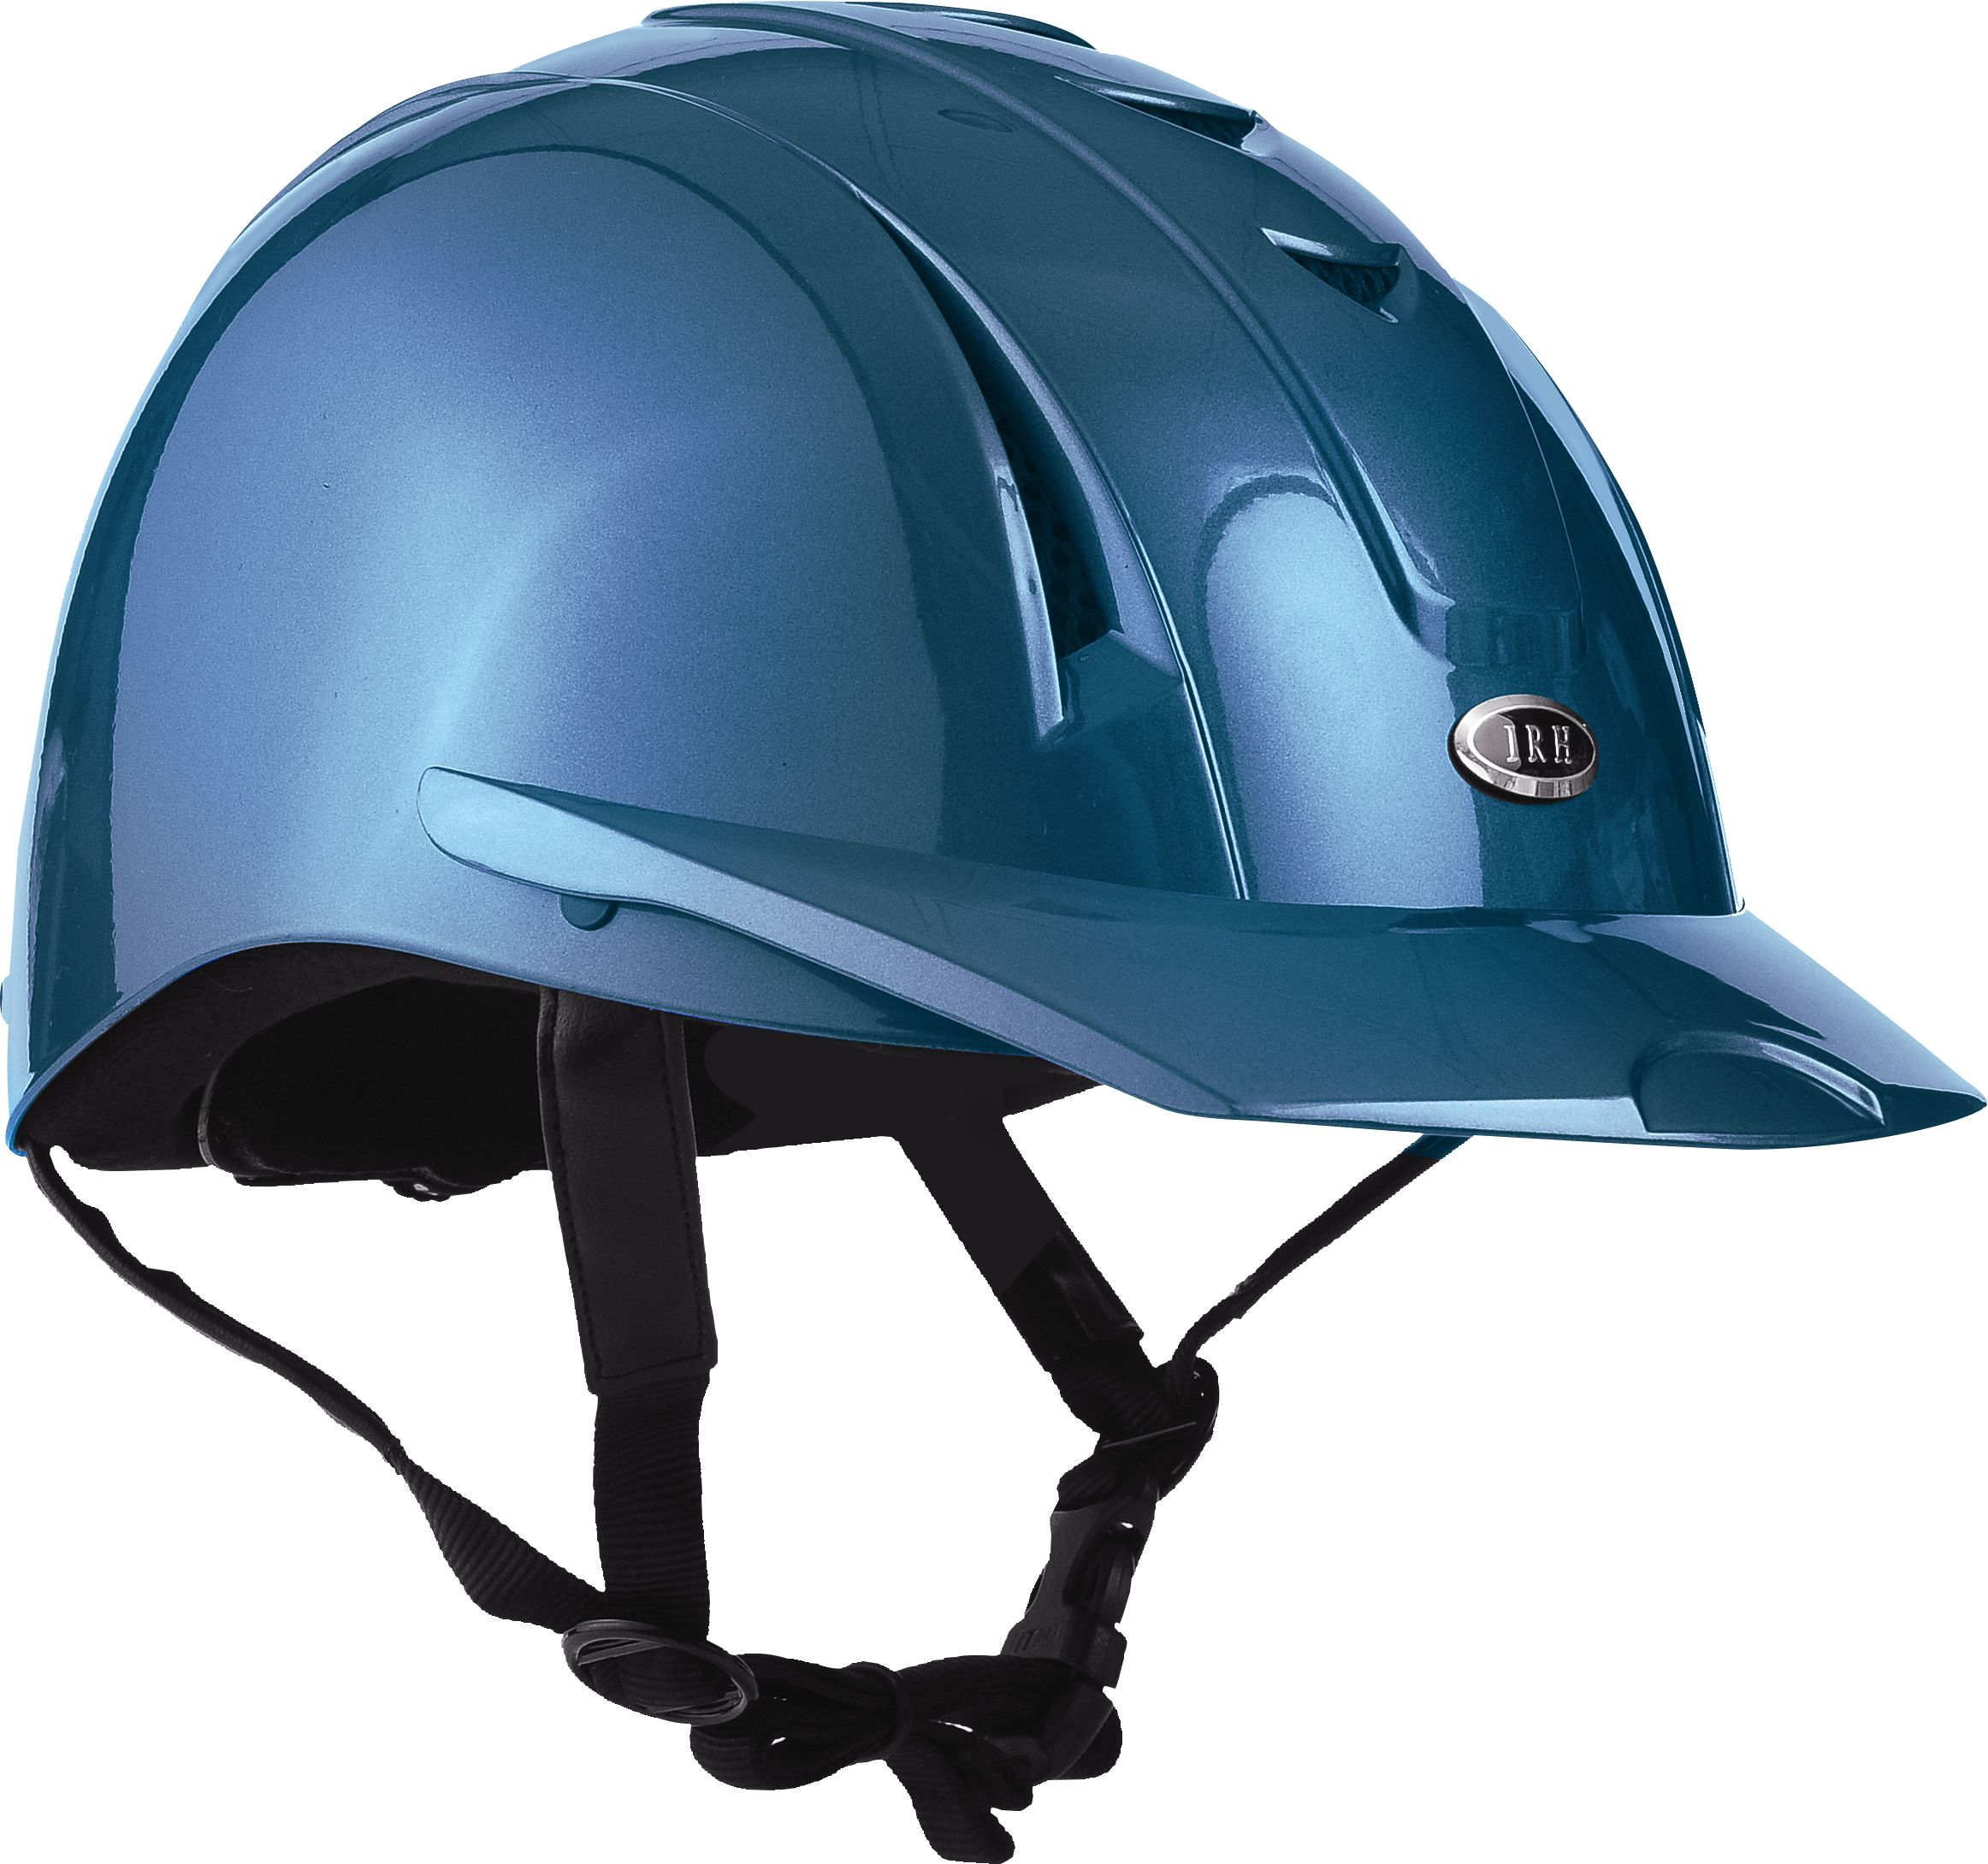 Irh Equi Pro Ii Riding Helmet Riding Helmets Horse Riding Hats